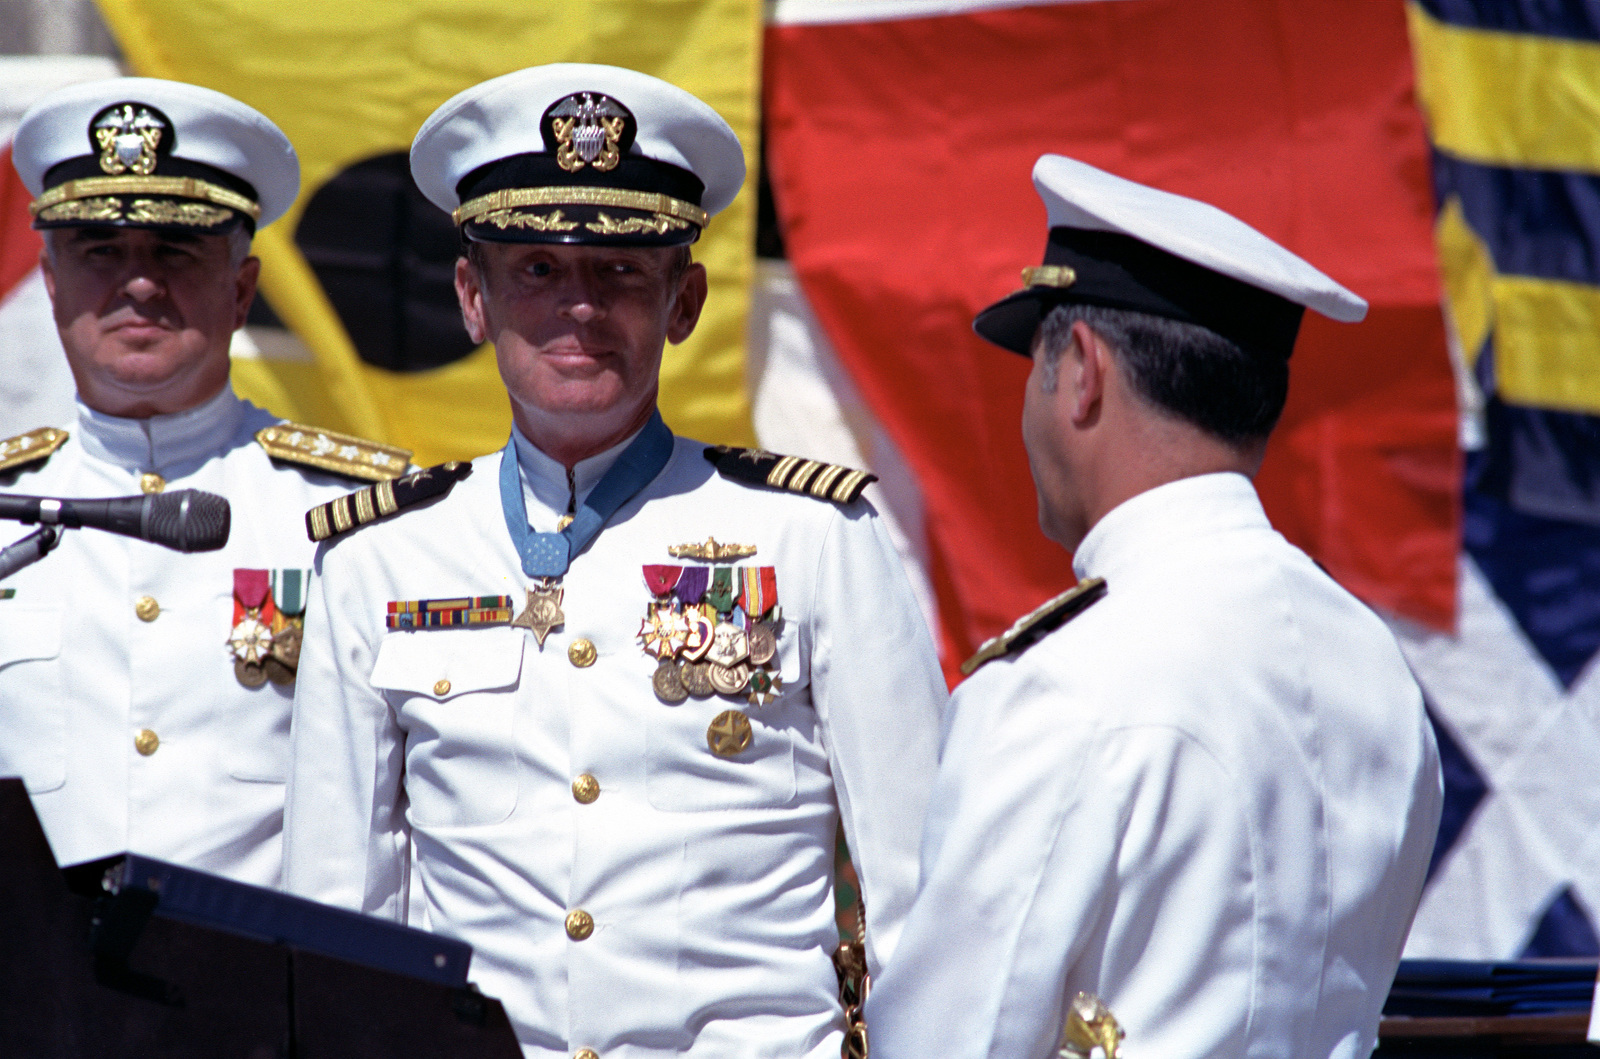 Rear Admiral Alvin B. Koeneman, CHIEF of Chaplains/Director of Religious Ministeries, stands by as an officer speaks with Captain Thomas G. Kelley during the captain's retirement ceremony at the United States Navy Memorial. During his distinguished naval career, Kelley received numerous awards, including the Medal of Honor for conspicuous gallantry while serving in Vietnam